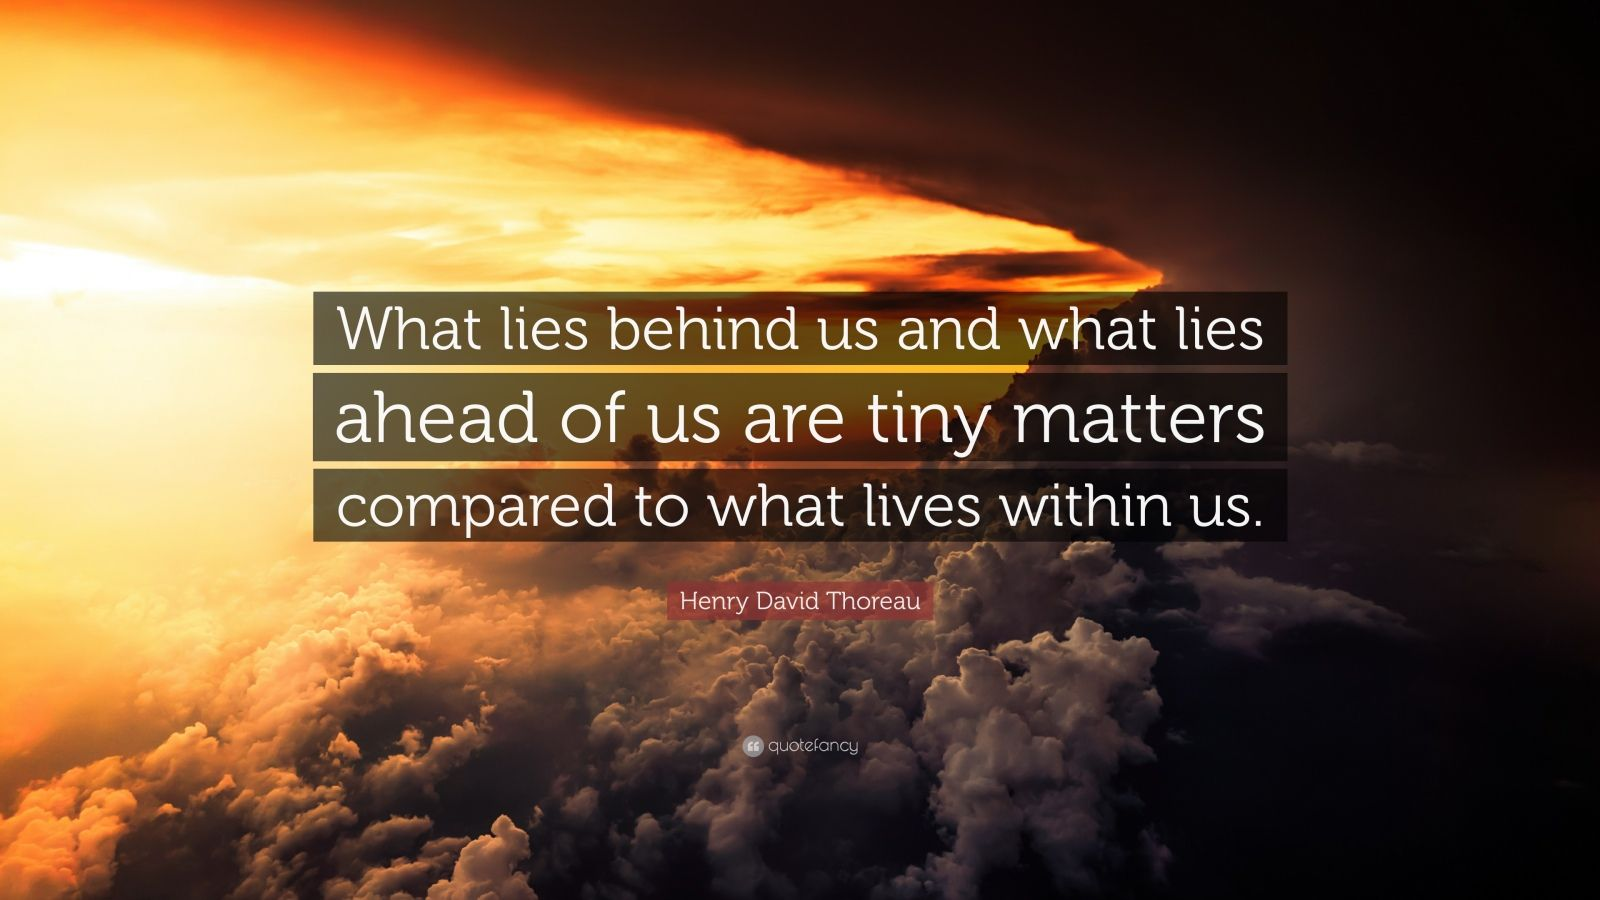 Beautiful Life Wallpapers With Quotes Henry David Thoreau Quote What Lies Behind Us And What